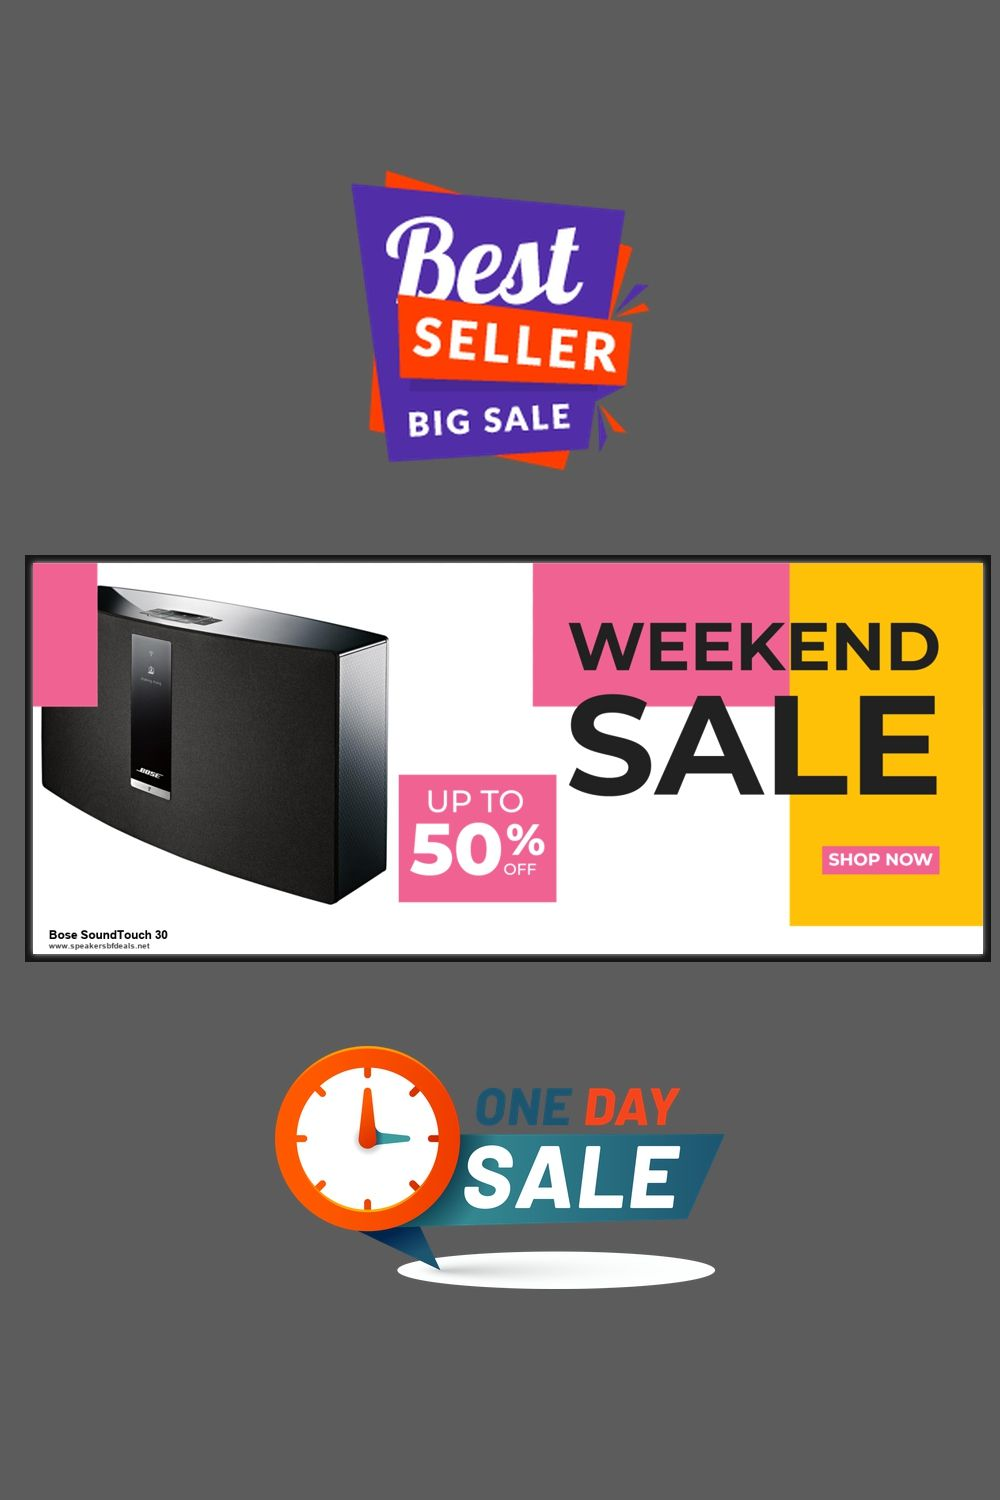 List Of 10 Bose Soundtouch 30 Black Friday Deals 2020 In 2020 Black Friday Wireless Music System Black Friday Deals